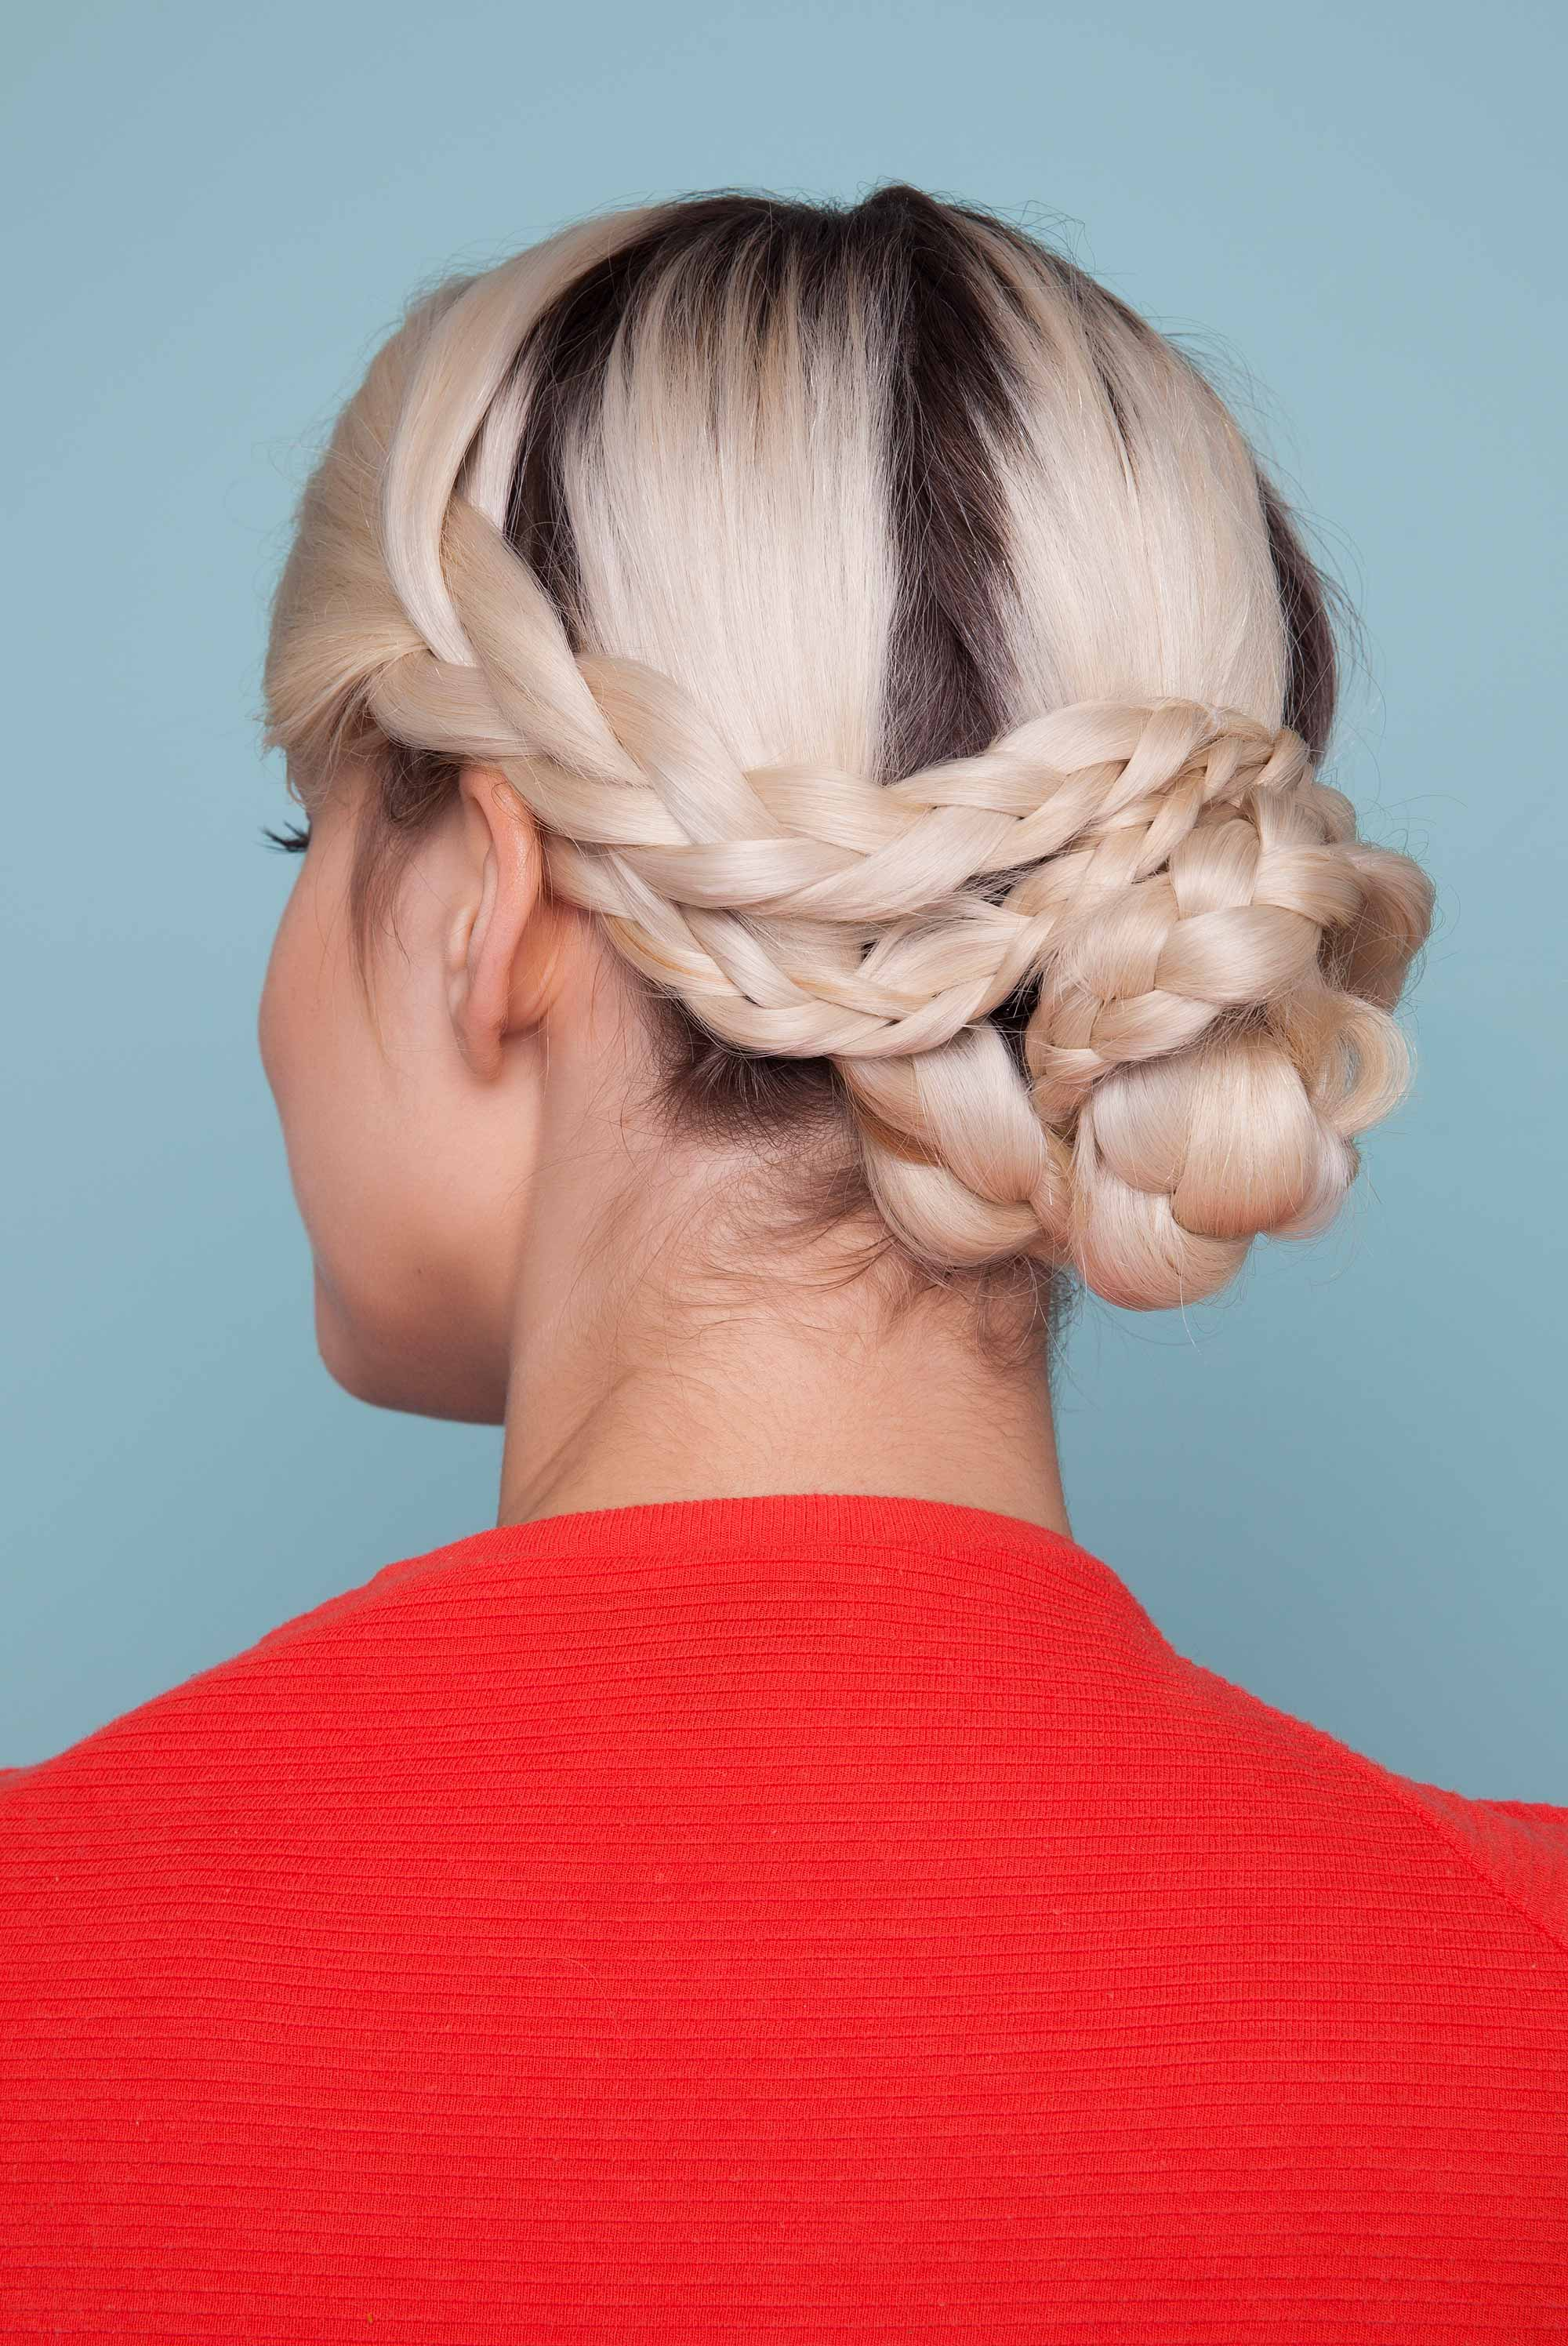 Snake braid hairstyles: Back view of blonde woman with hair styled in a snake braid bun updo.